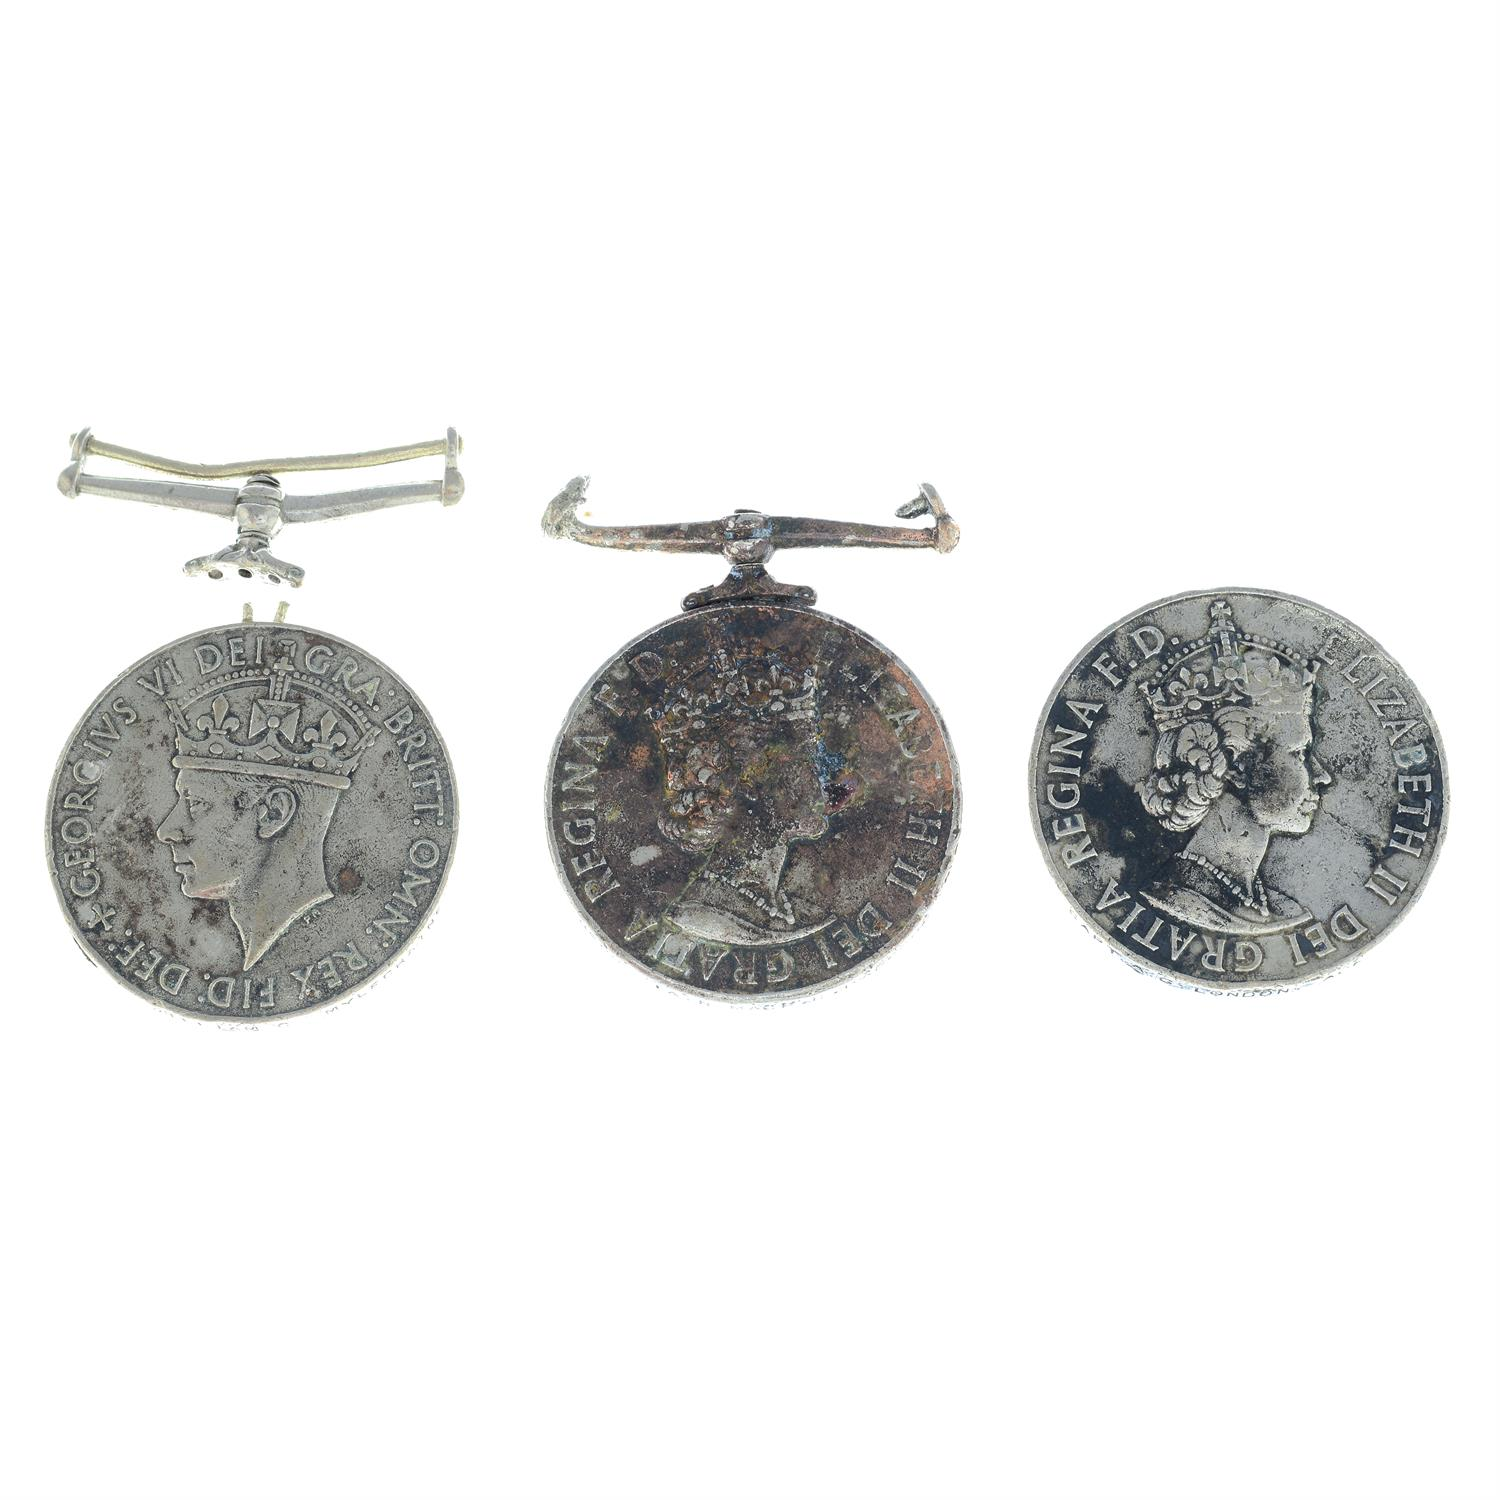 An assortment of civil medals, to include Police Long Service and Good Conduct medals, etc. (6). - Image 3 of 4